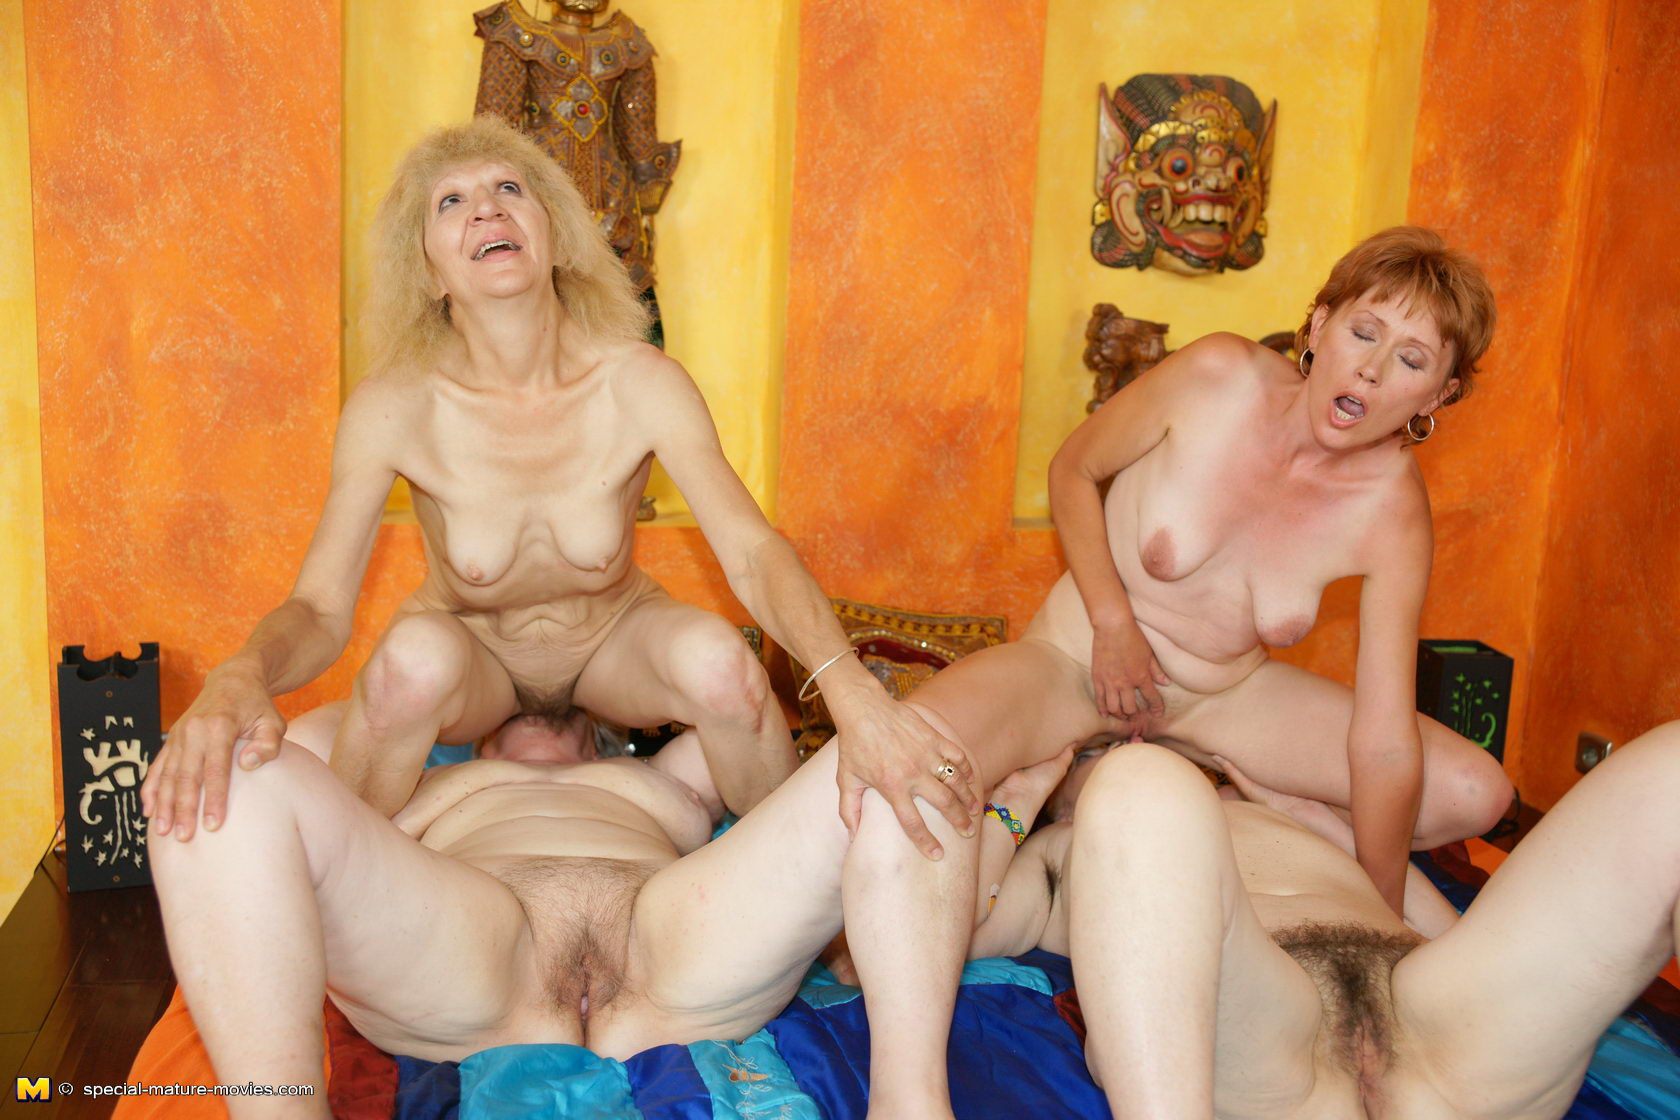 Party sex lesbian threesome